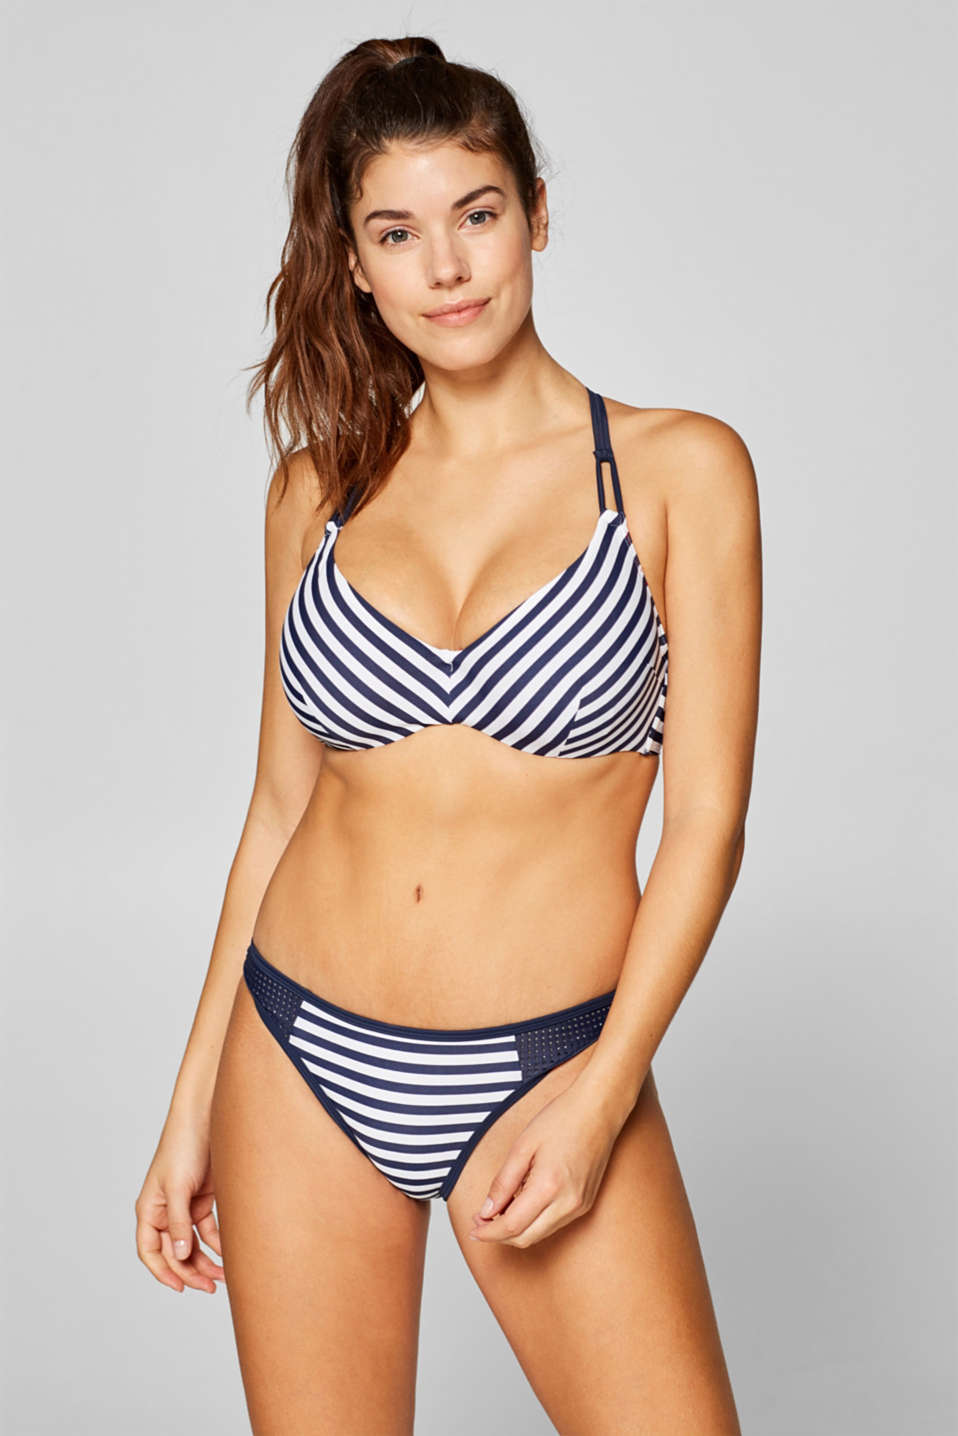 Esprit - Underwire top for large cup sizes